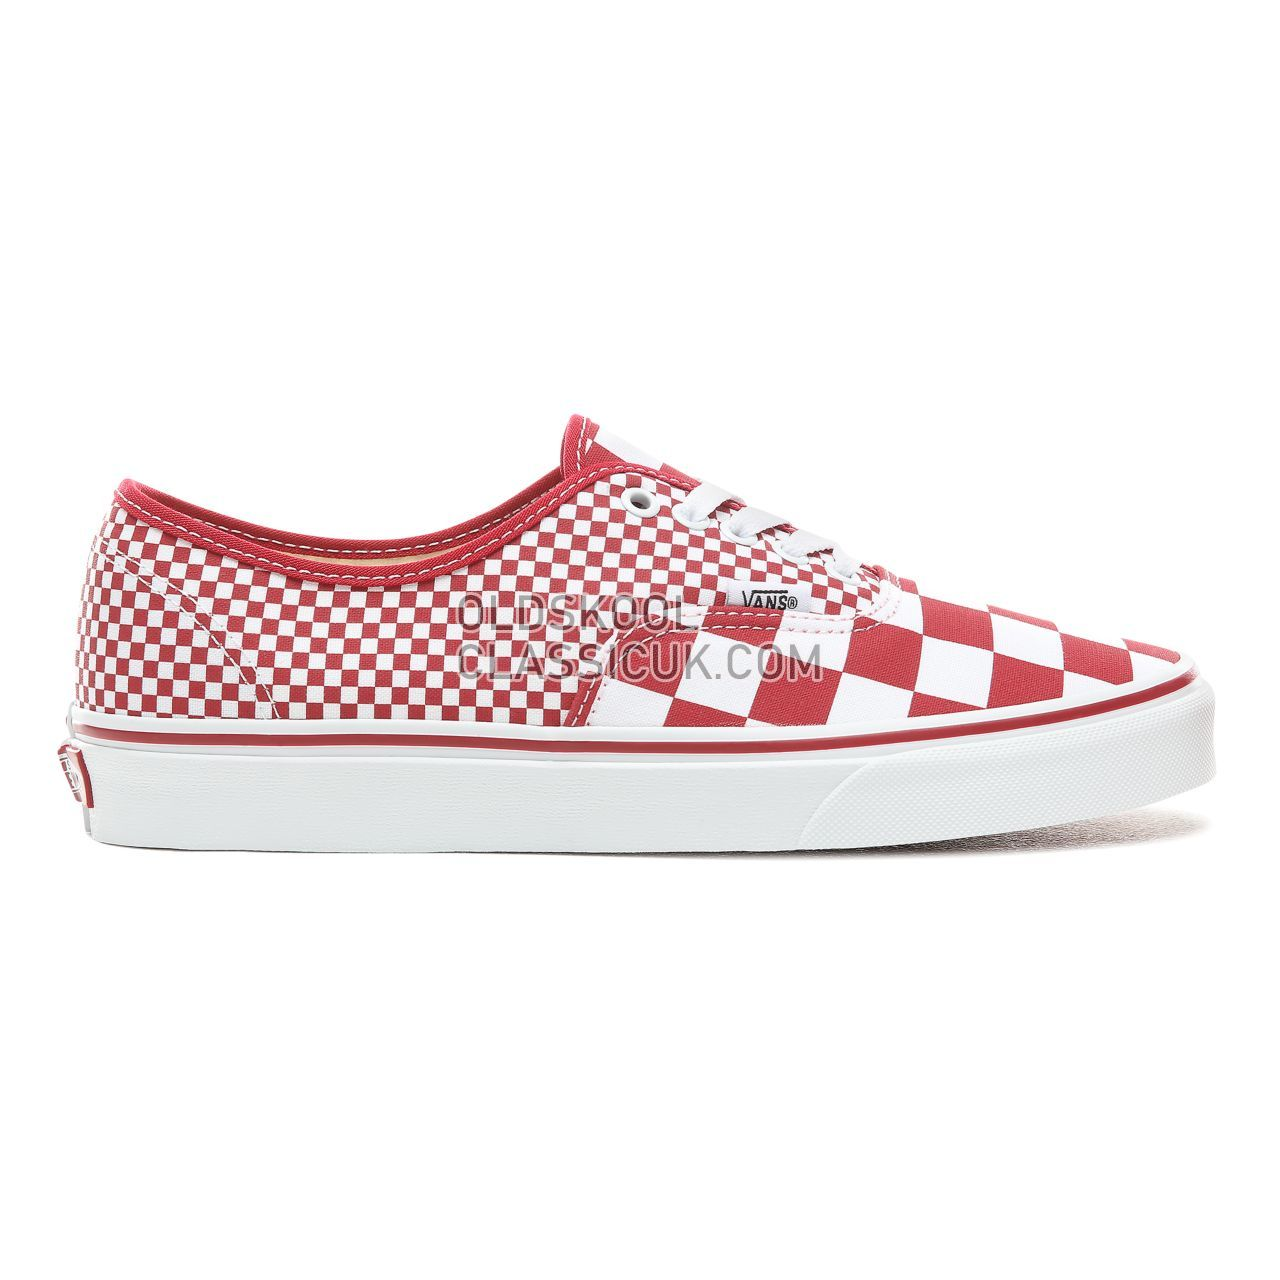 Vans Mix Checker Authentic Sneakers Mens (Mix Checker) Chili Pepper/True White VN0A38EMVK5 Shoes